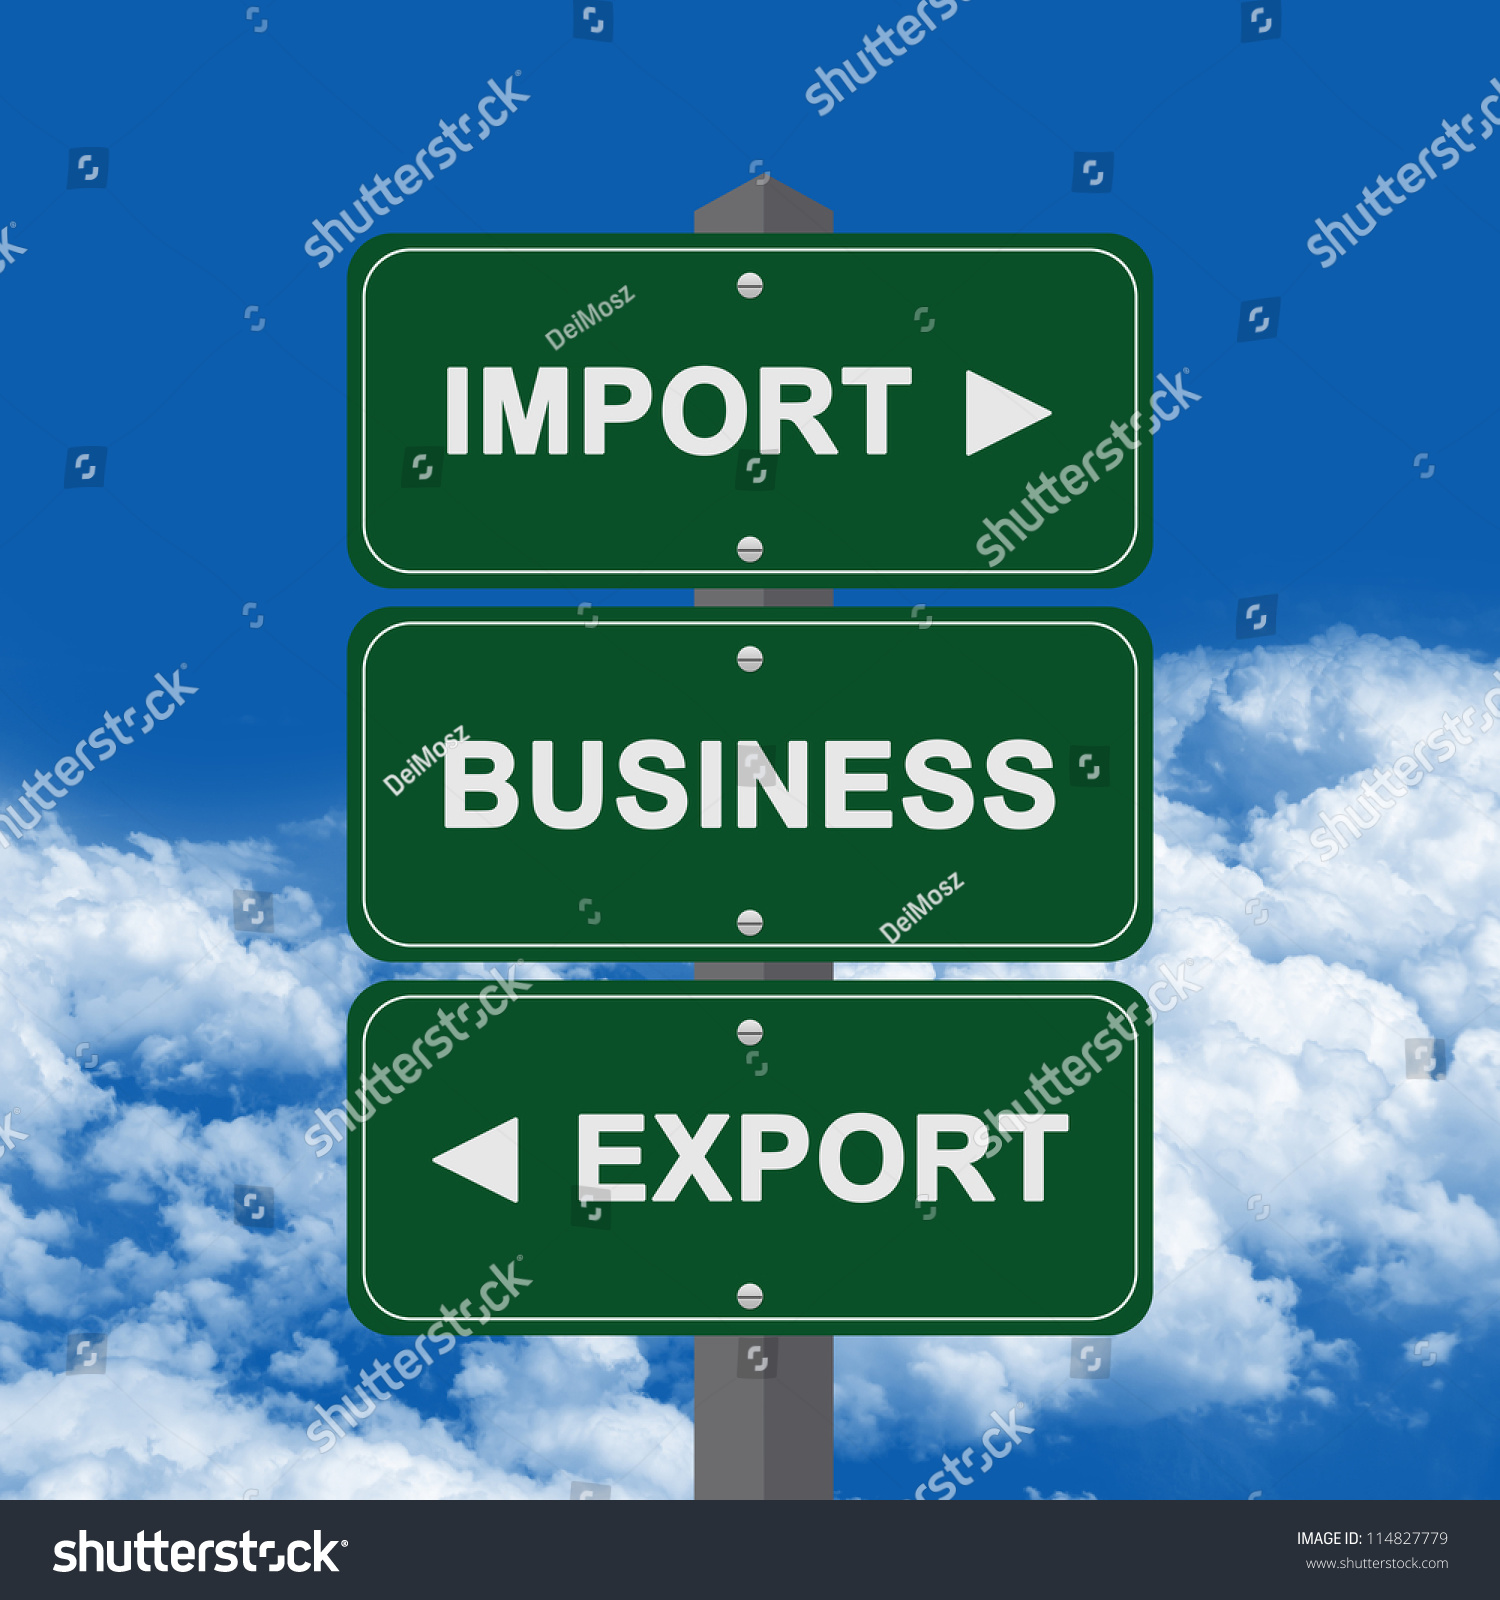 Business Concept Present By Green Street Sign Pointing To Import ...